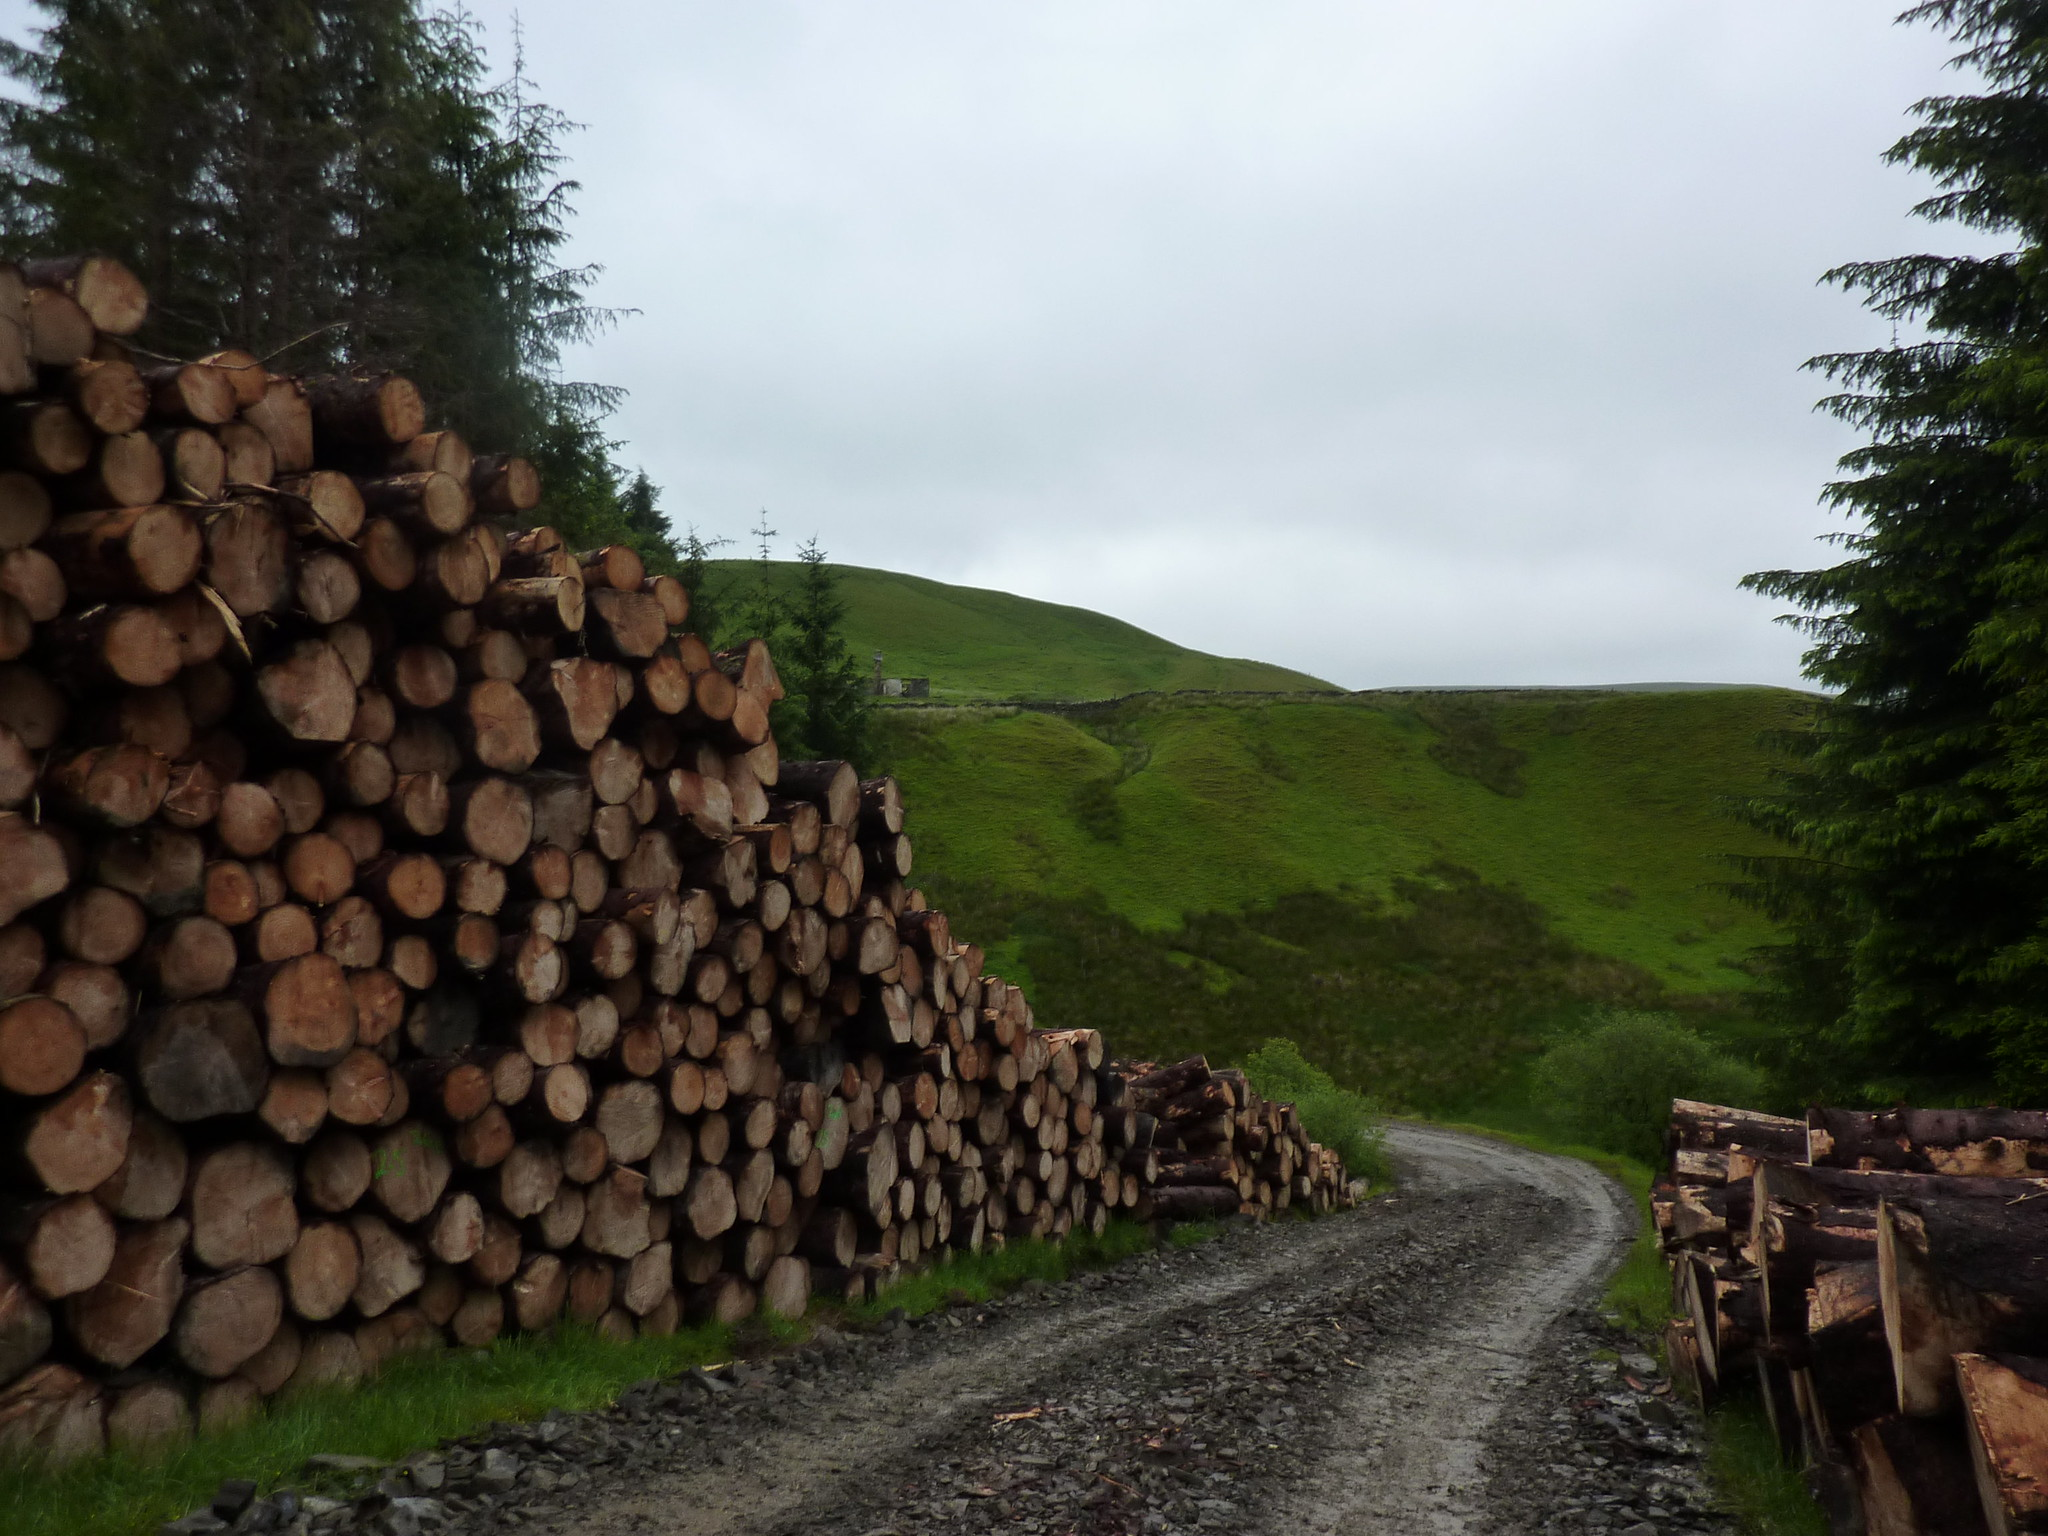 Logs stacked up in Cogshead Forest